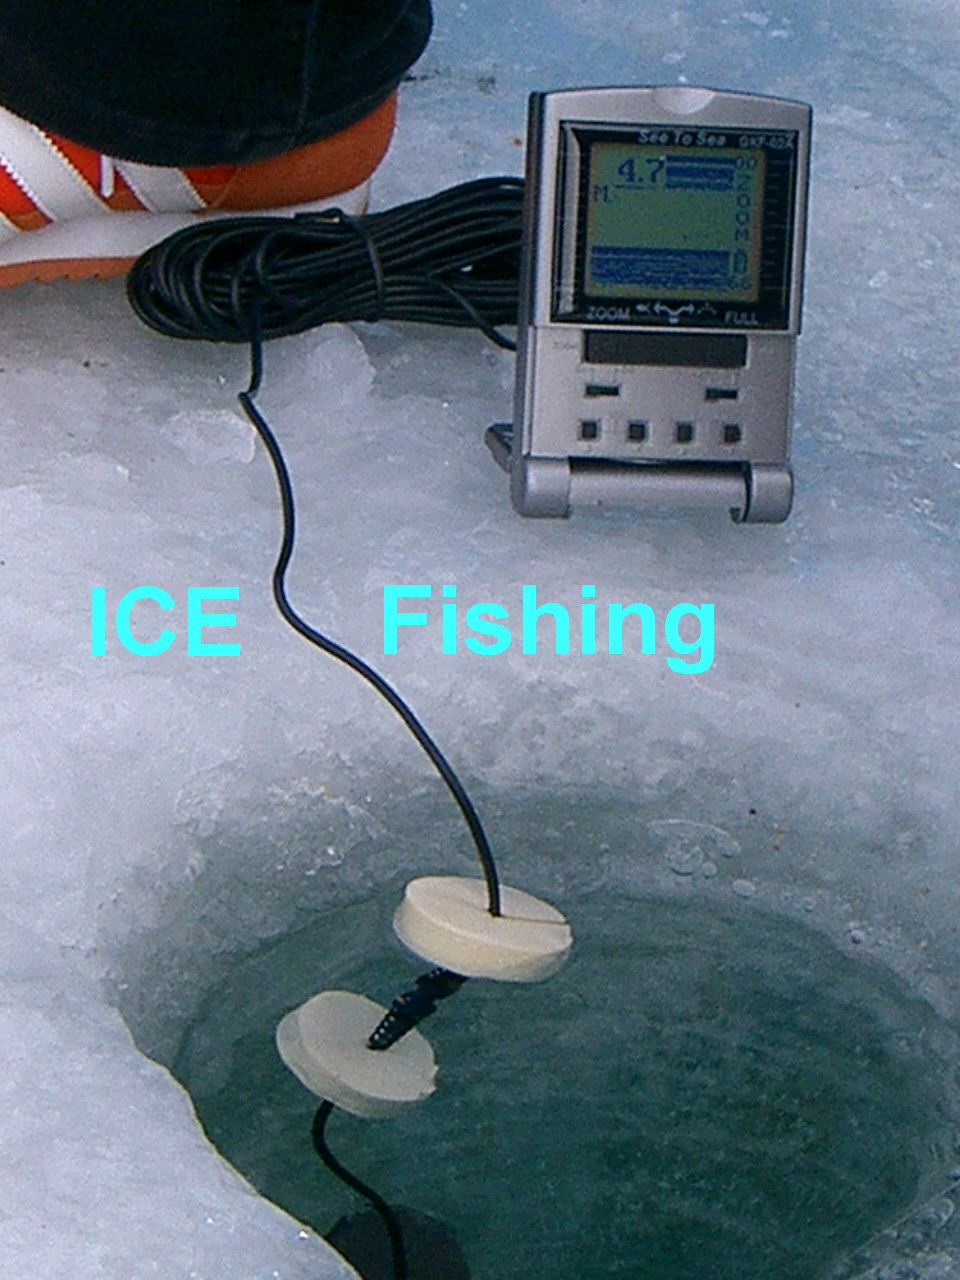 ice fishing with fishfinder gkf-02a, Fish Finder